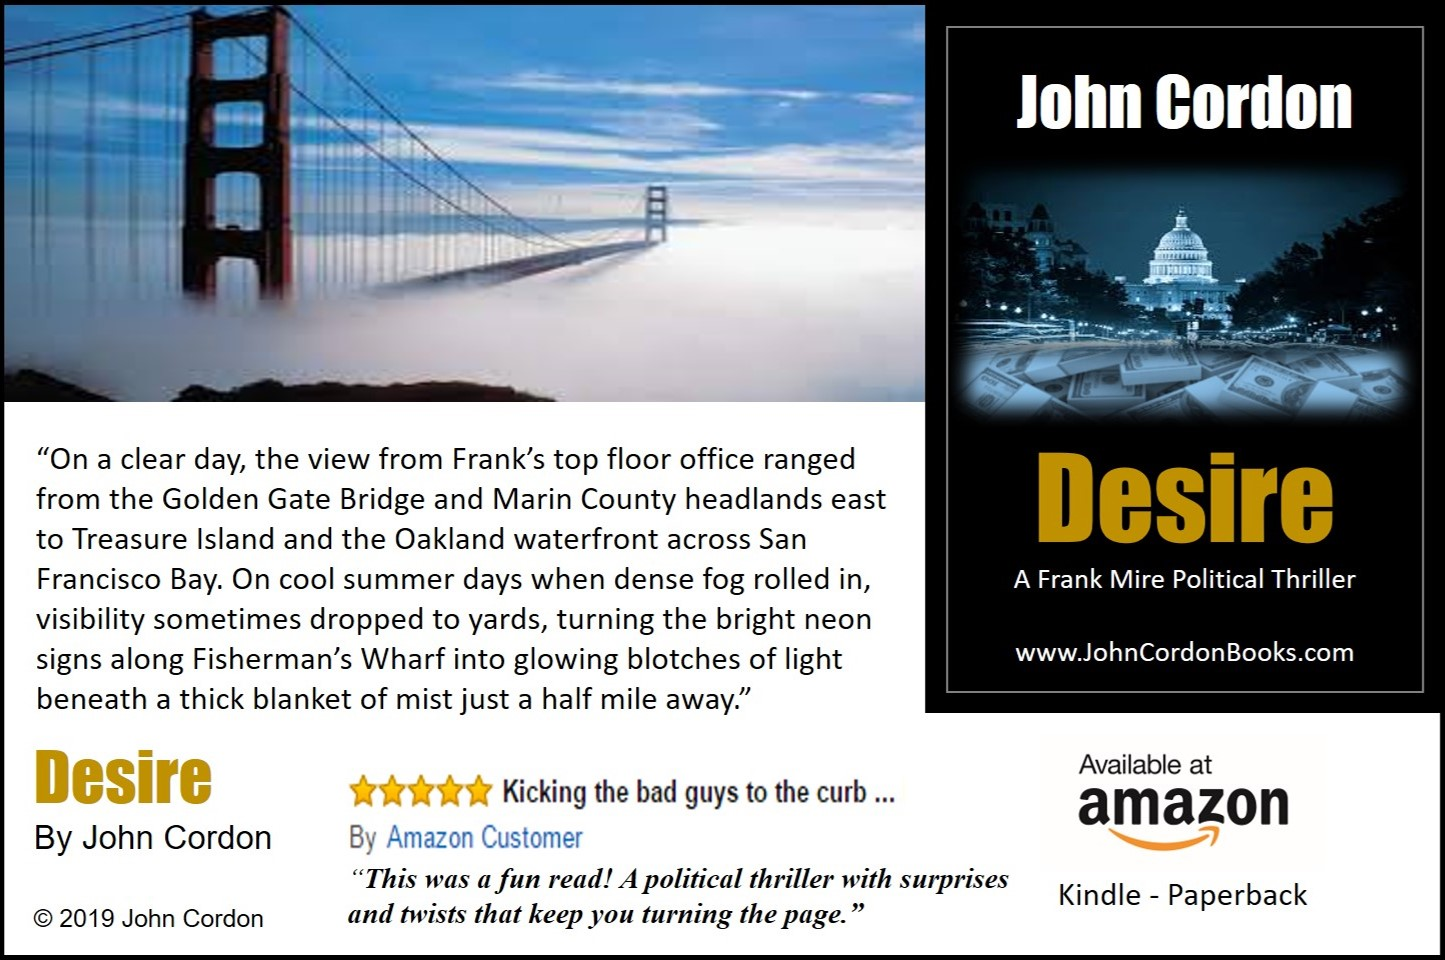 On Cool Days When Dense Fog Rolled In Desire by John Cordon